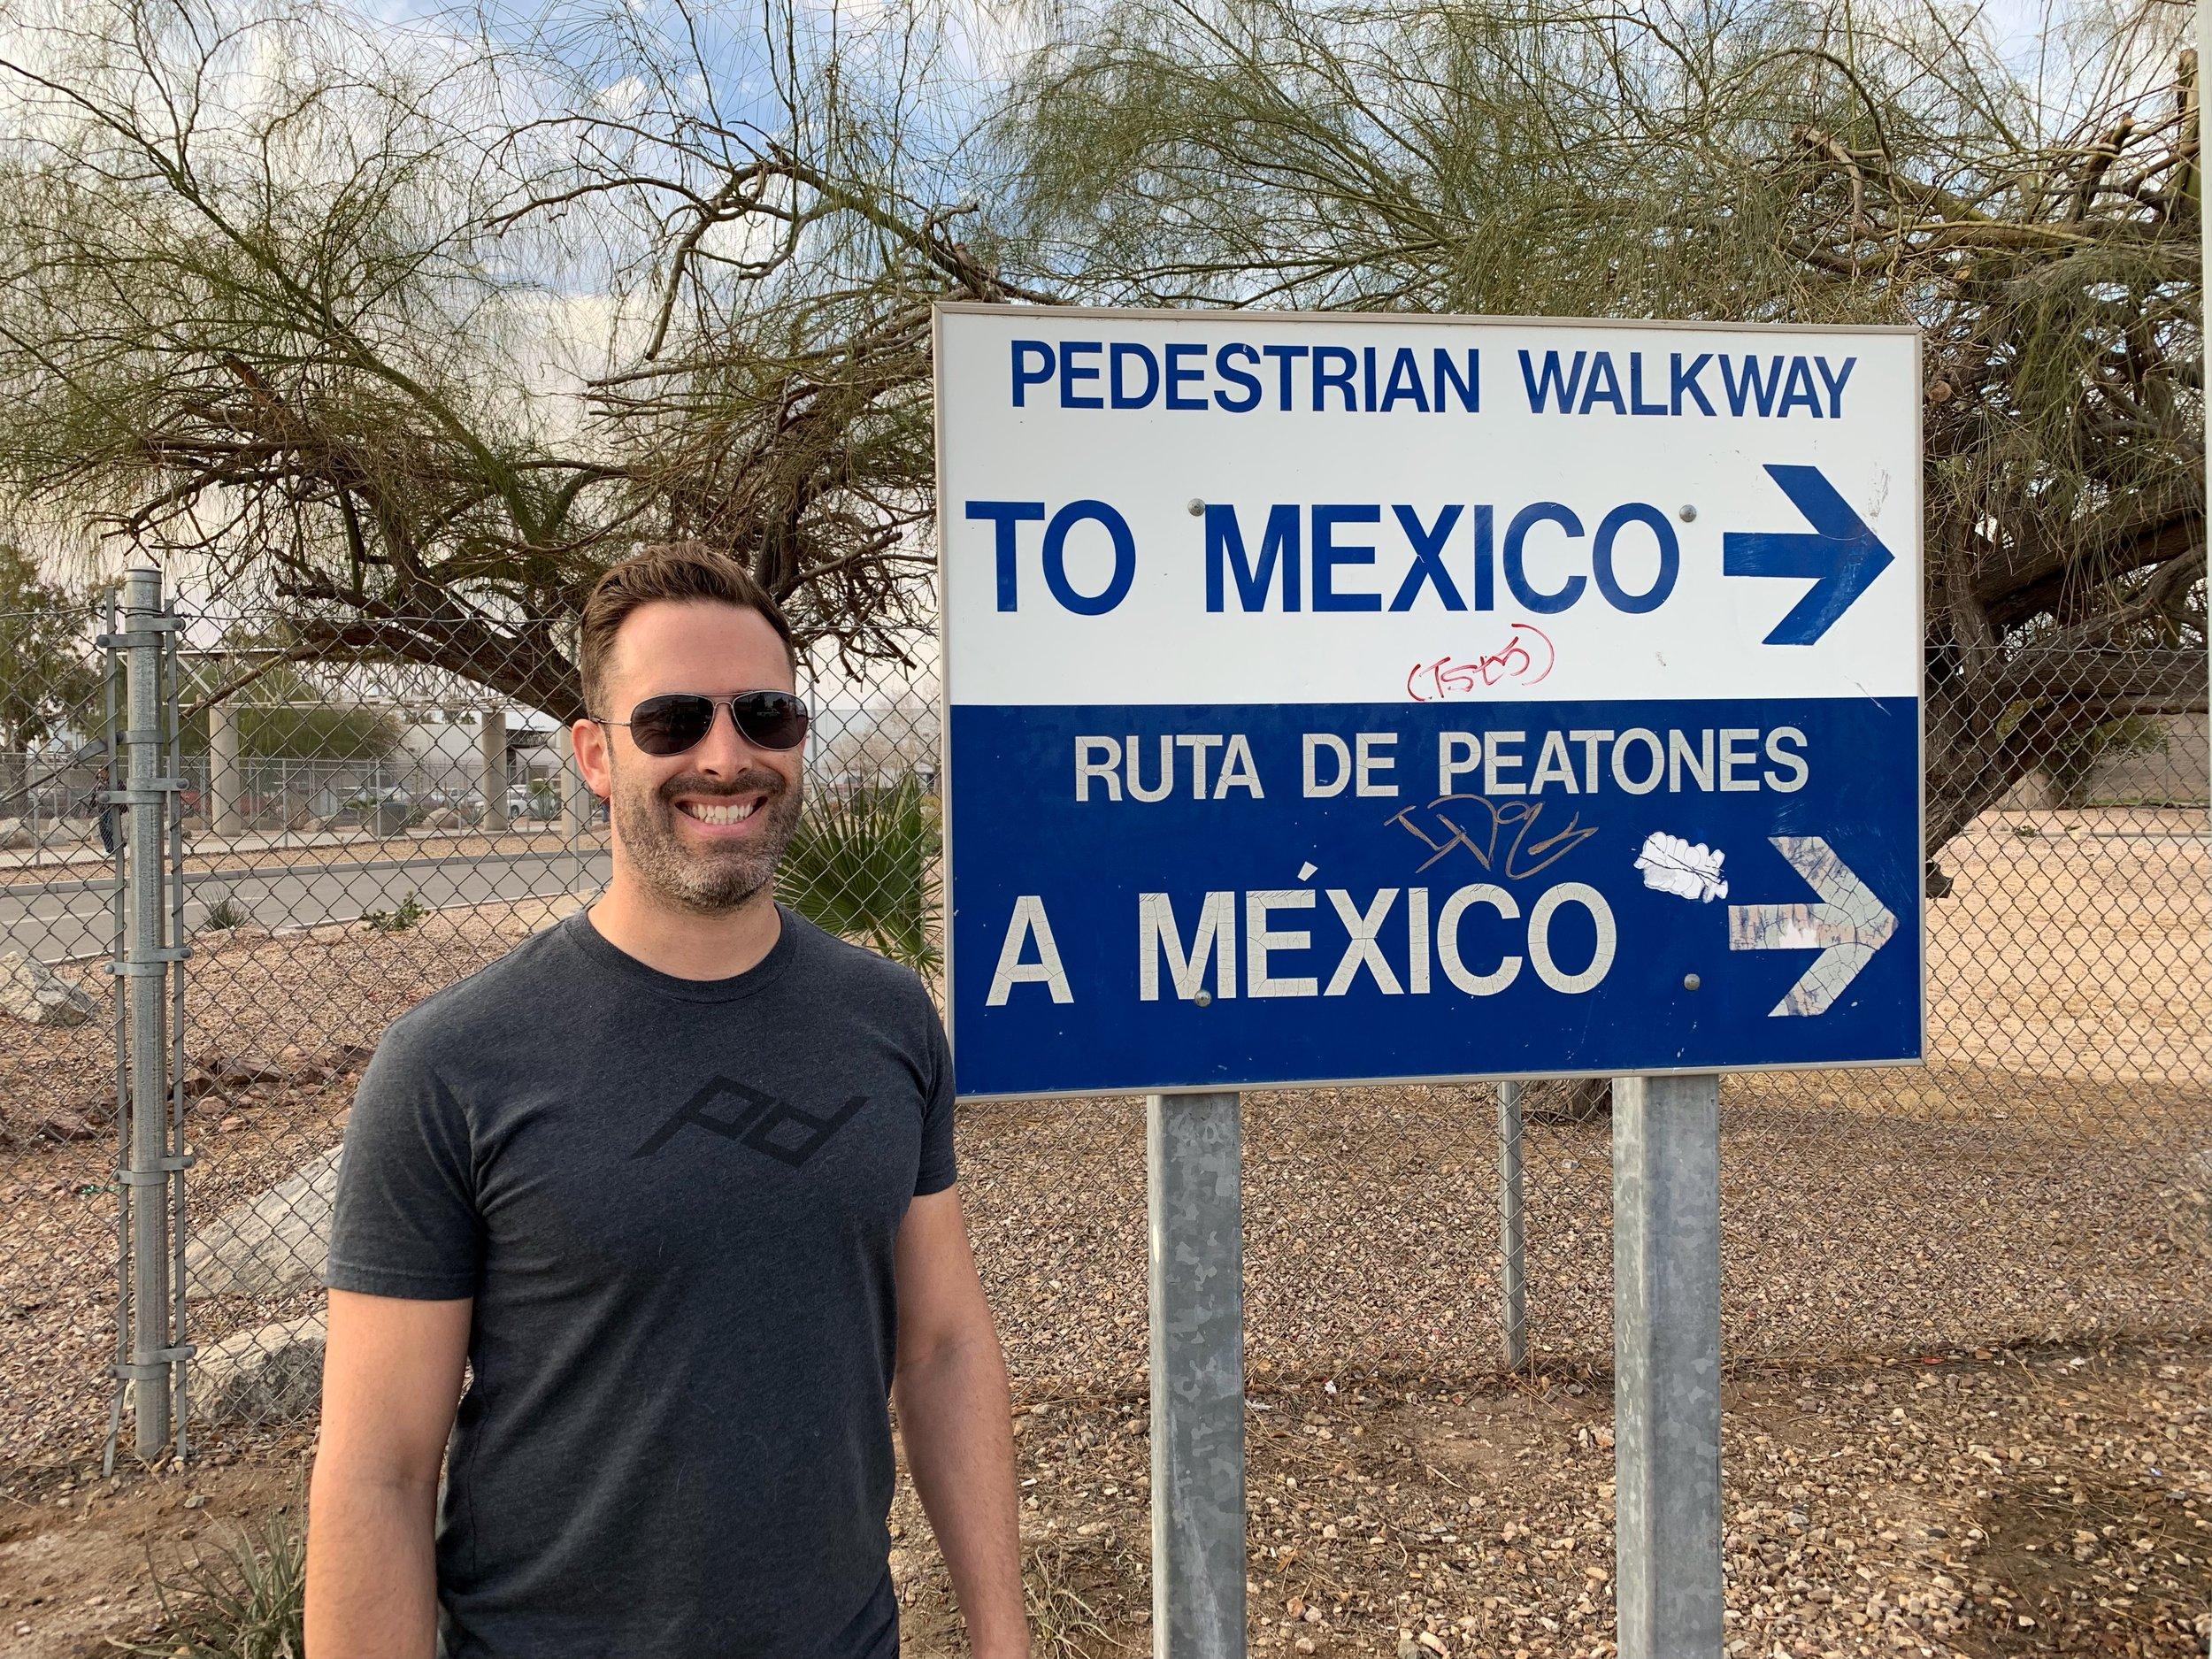 Ben's first trip to Mexico